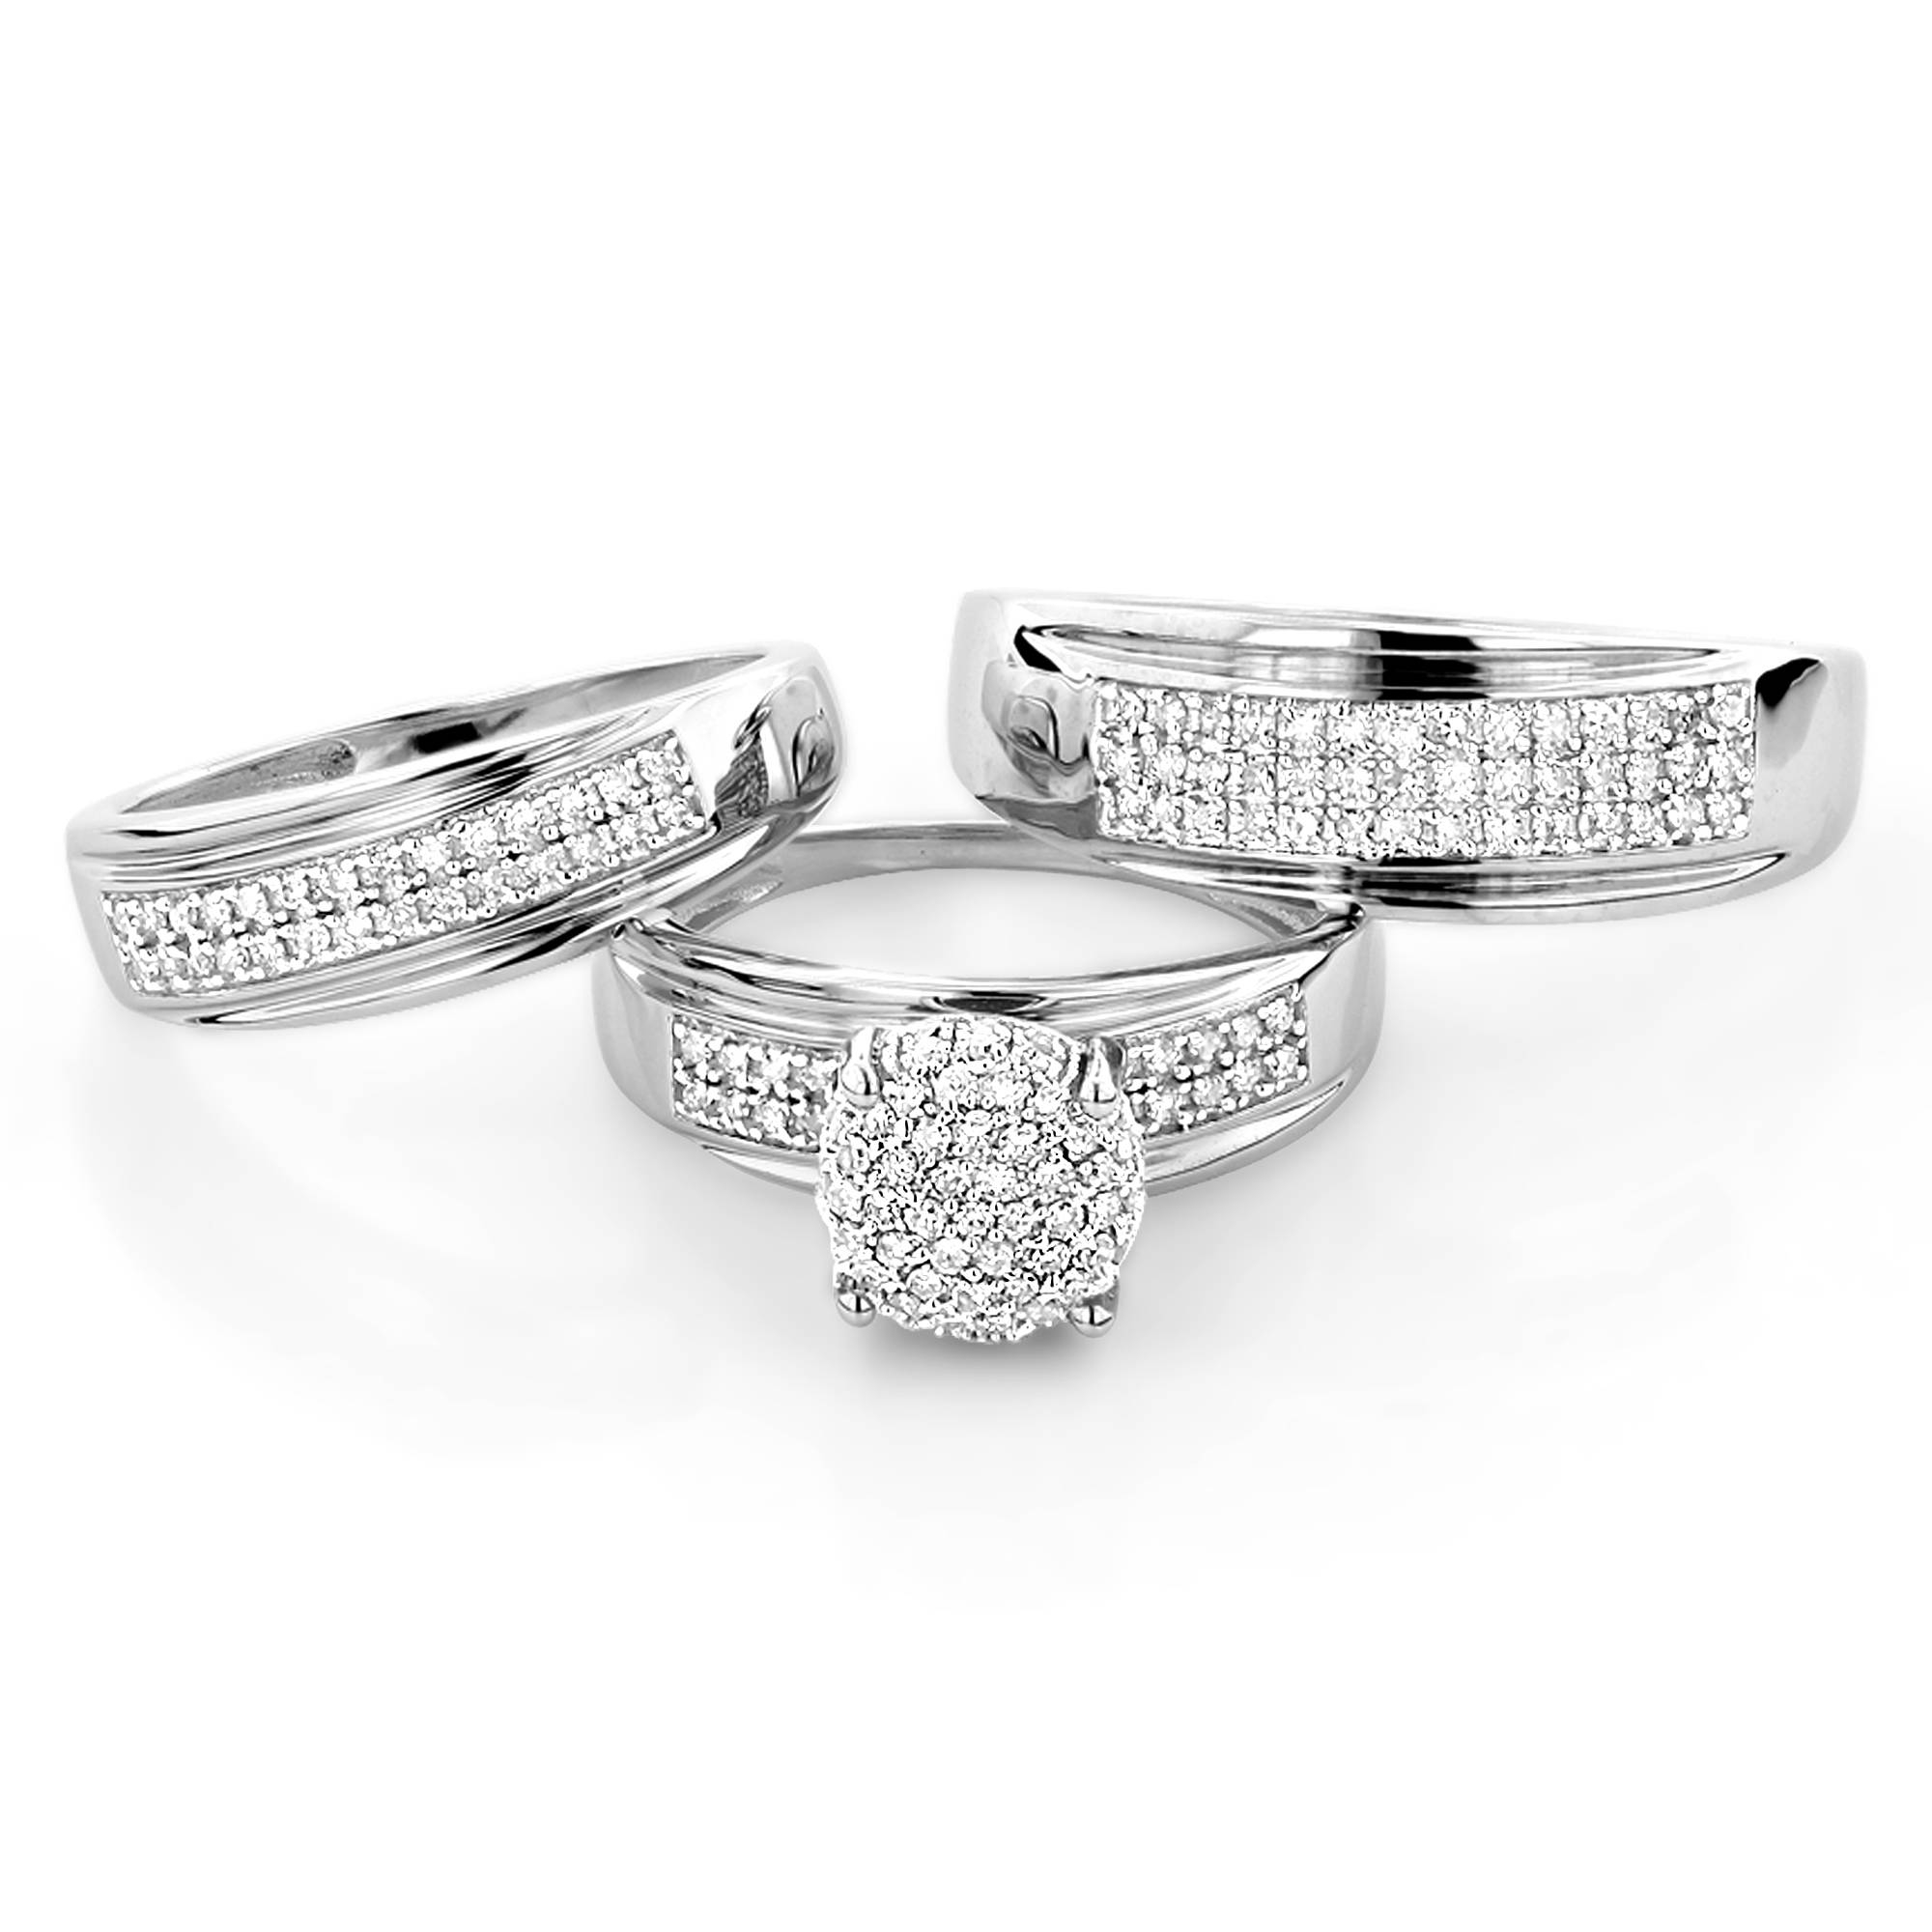 10K Gold Engagement Trio Diamond His And Hers Wedding Ring Set  (View 5 of 15)